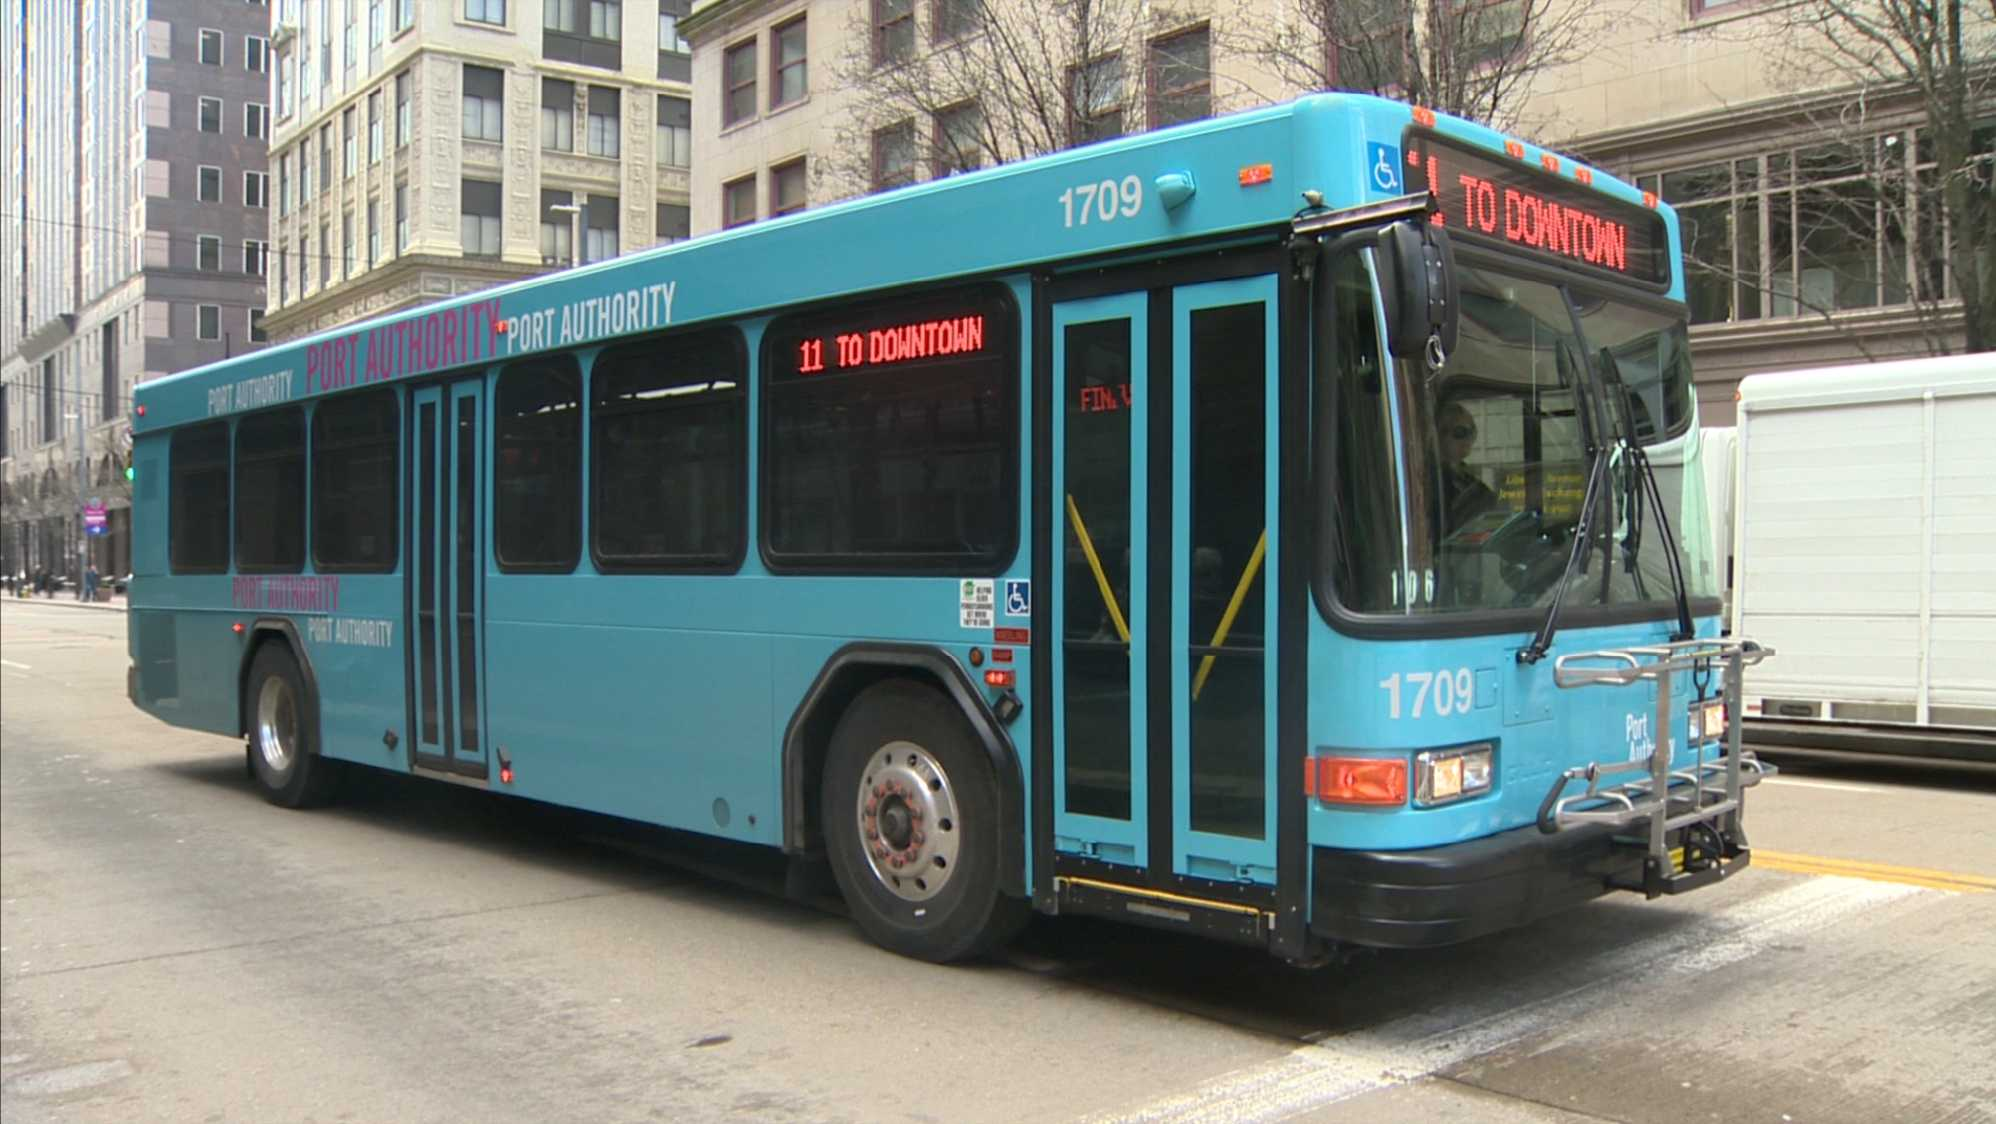 Port Authority bus downtown